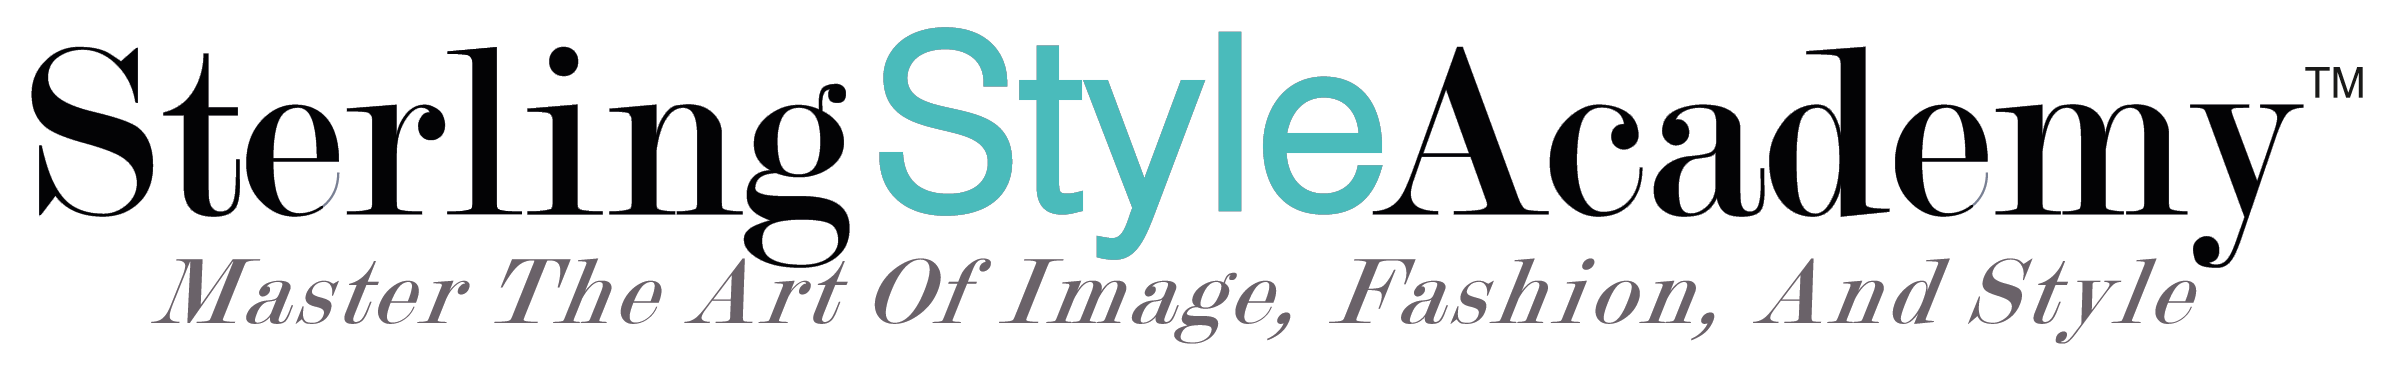 Online Image Consultant Training | Sterling Style Academy Online |  Online Fashion Consultant Training | Online Stylist Training